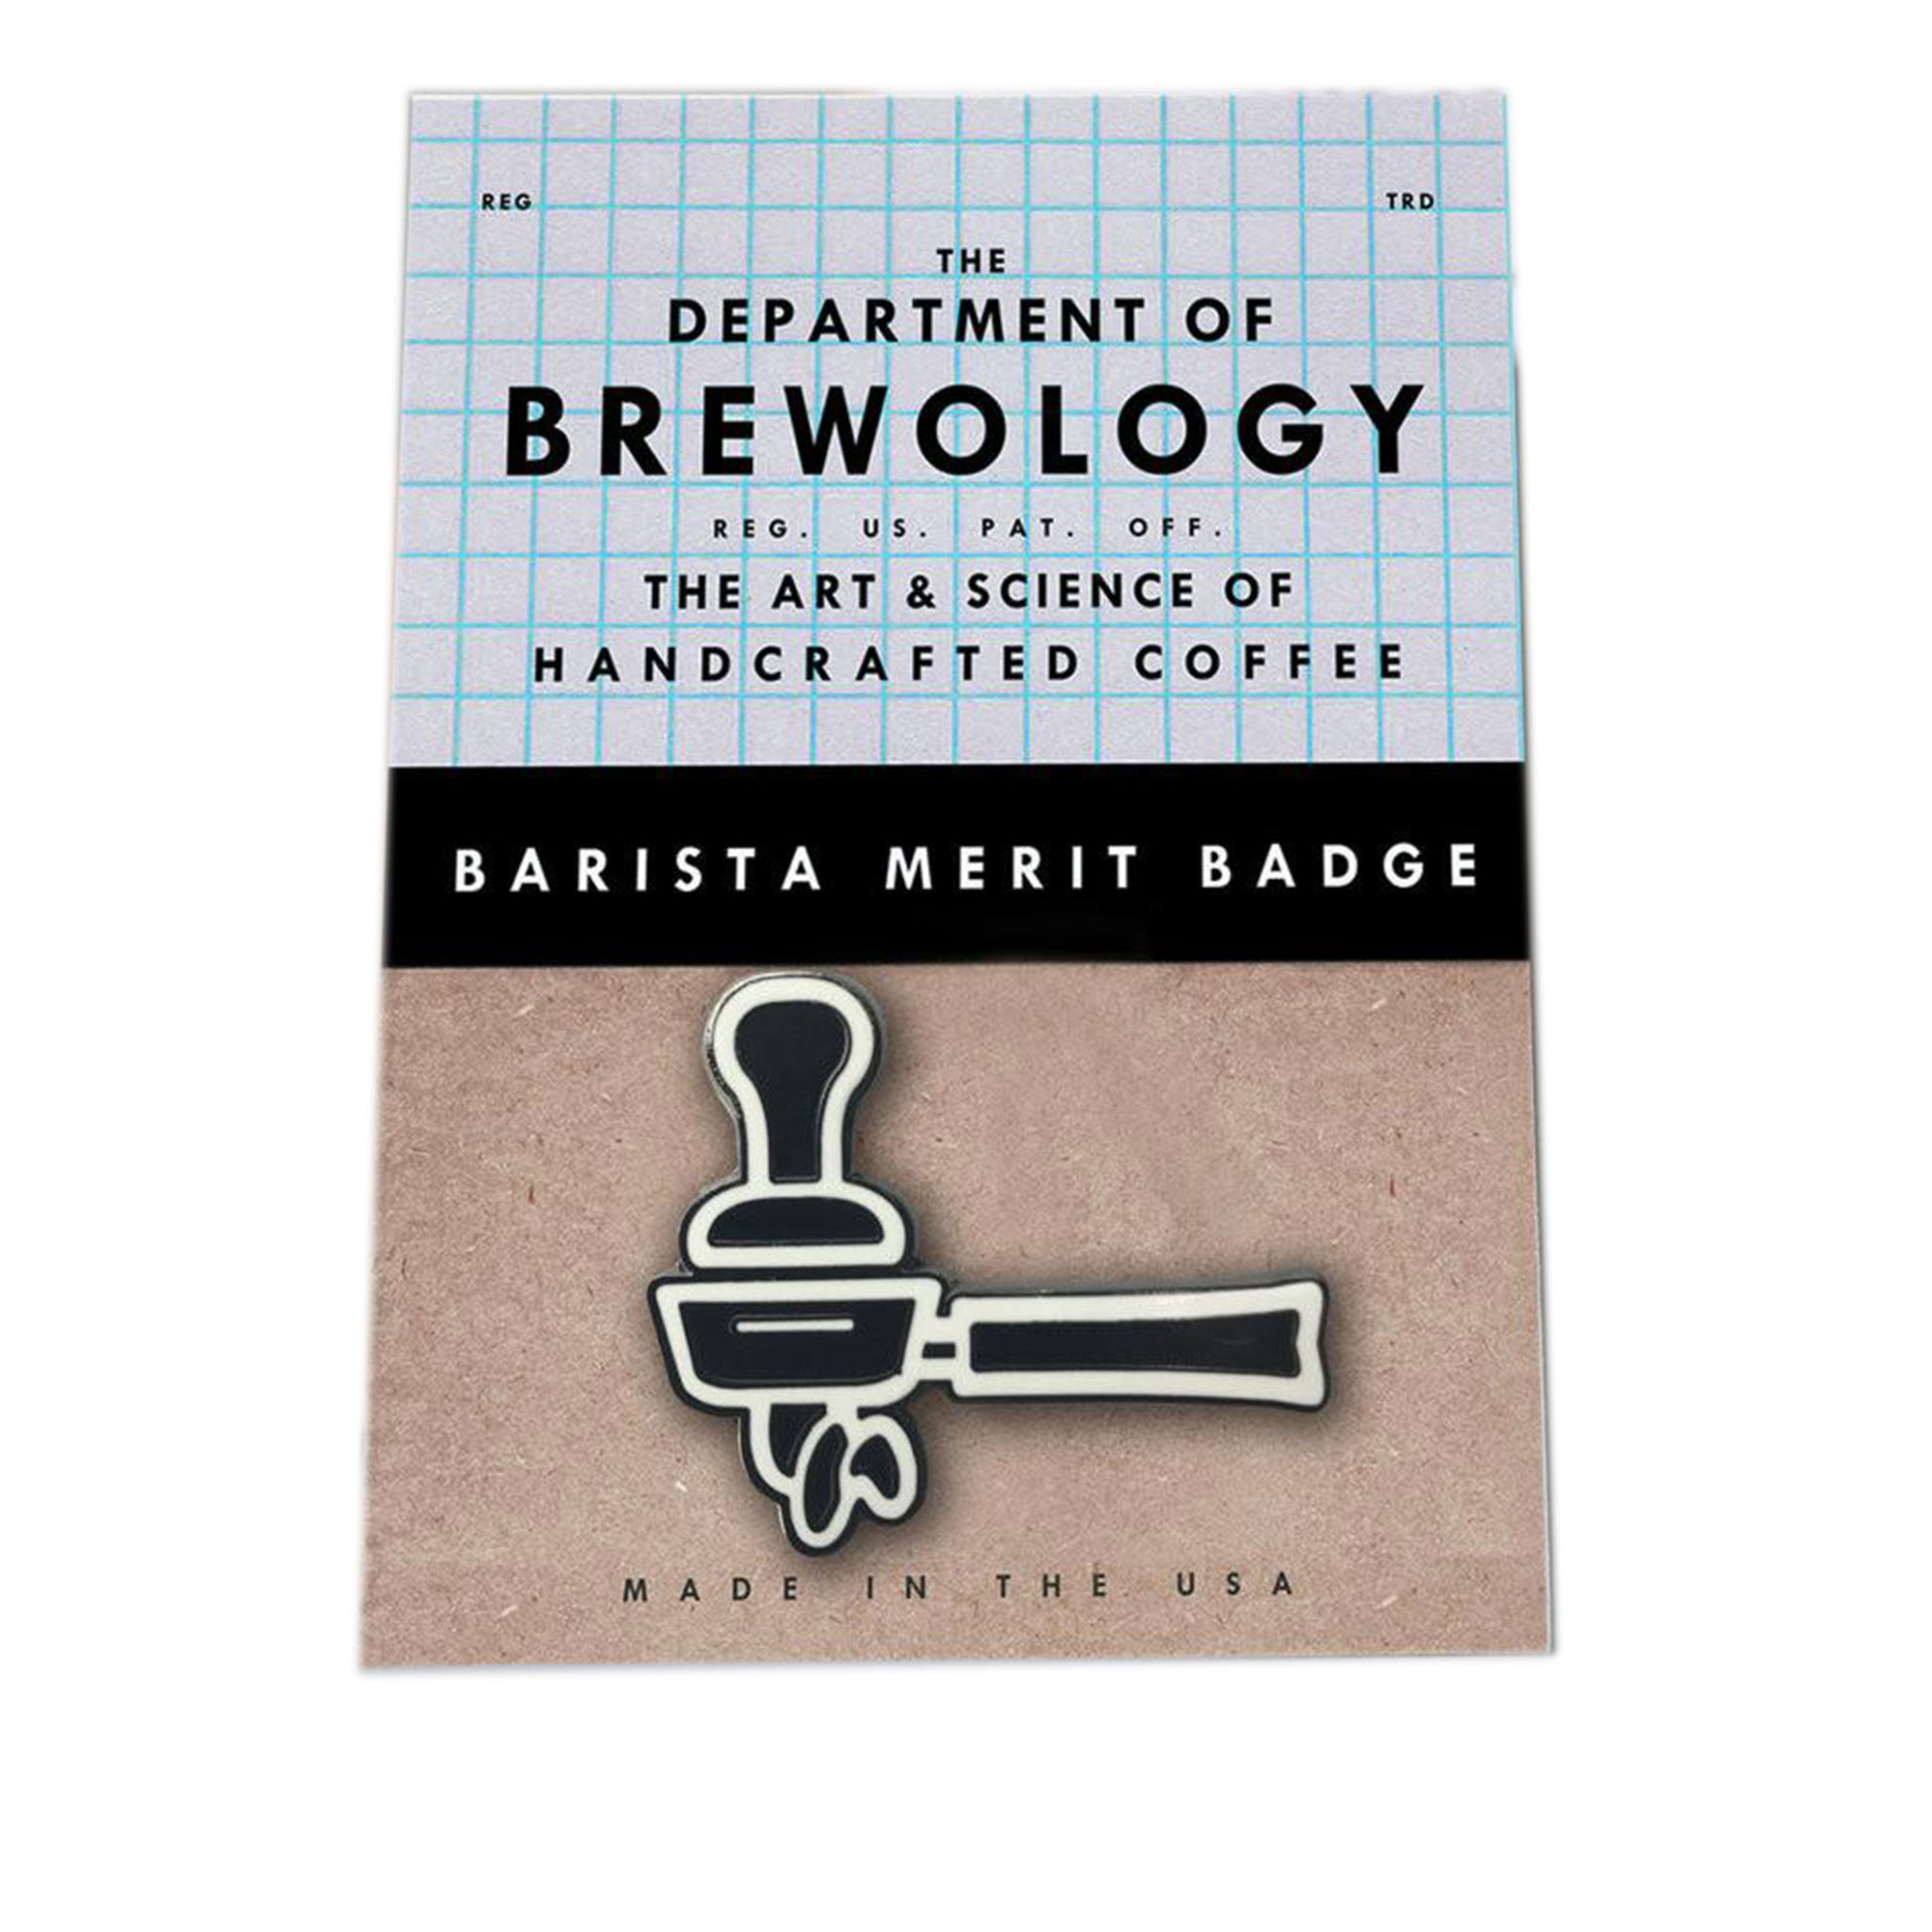 Barista Merit Badge - Portafilter - Dept of Brewology - Espresso Gear